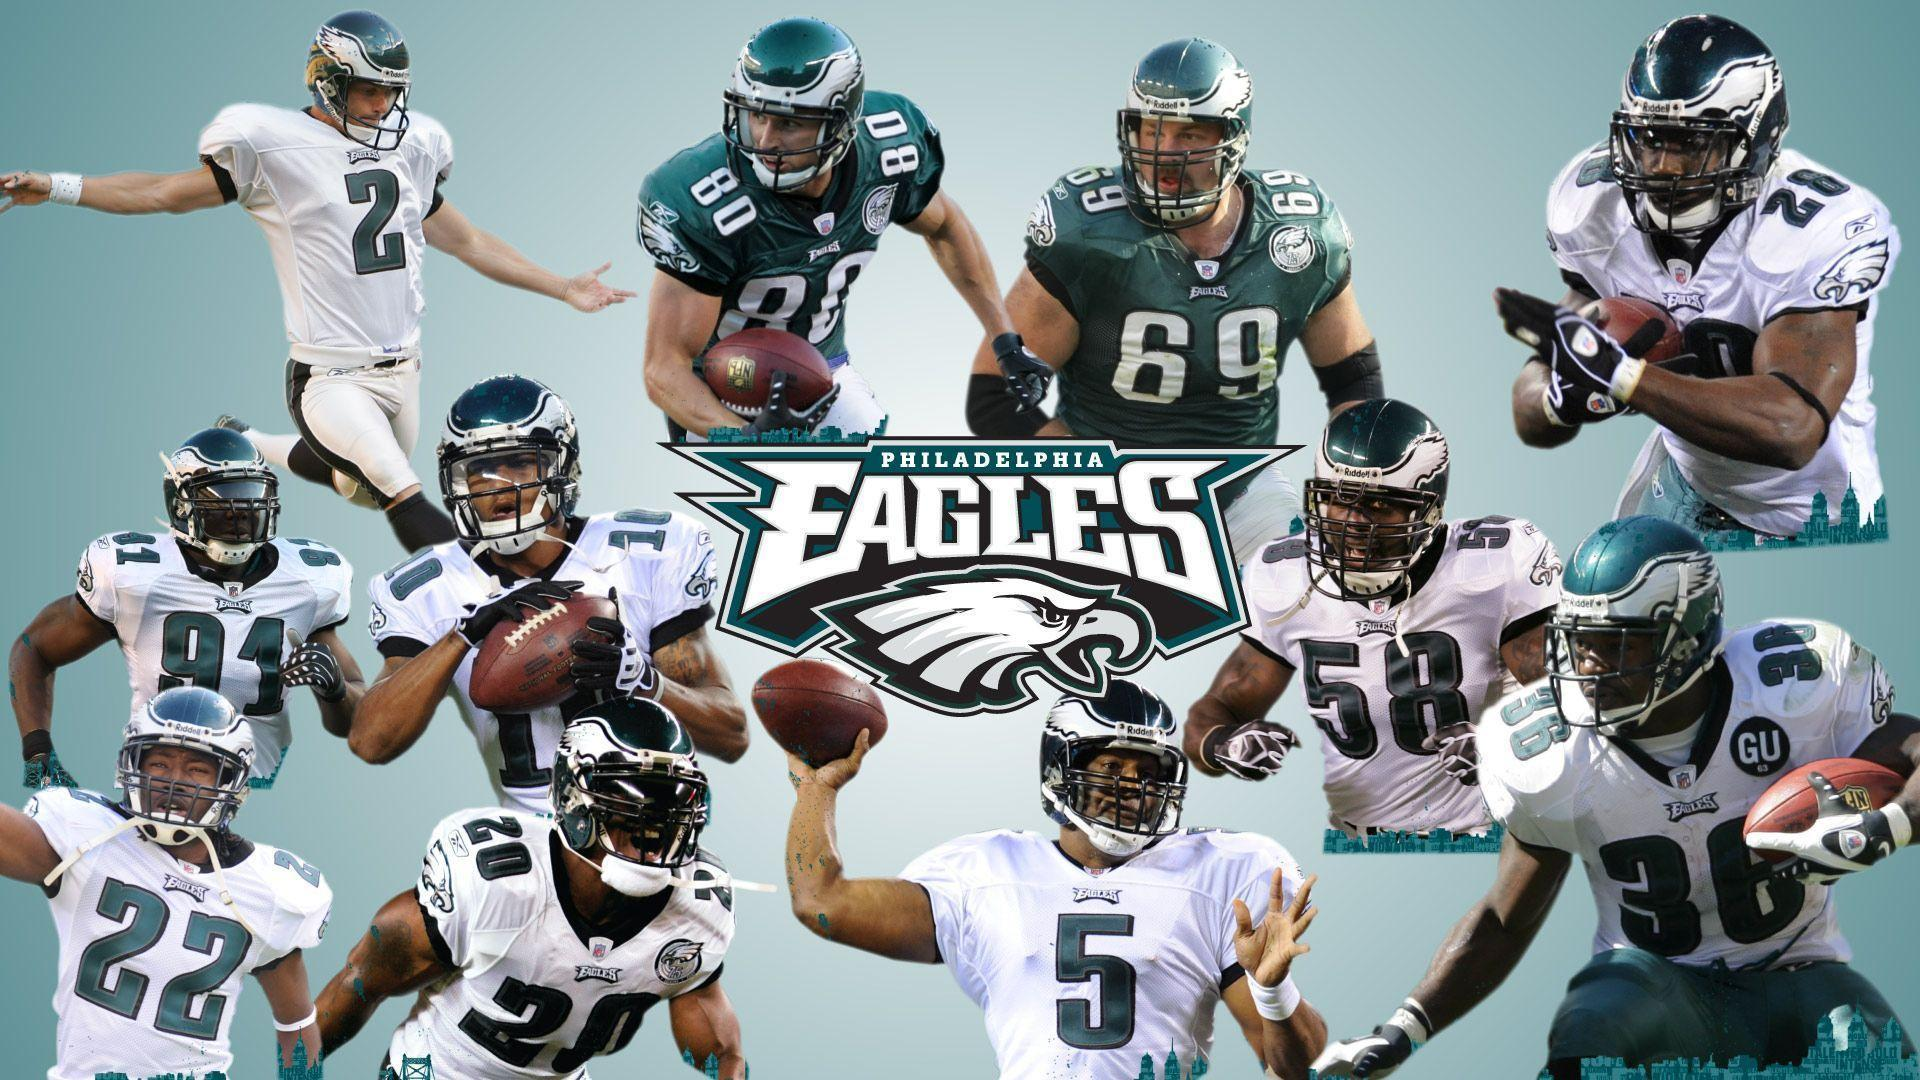 Fascinating Philadelphia Eagles Hd Wallpapers Pictures 1280x1024PX ...